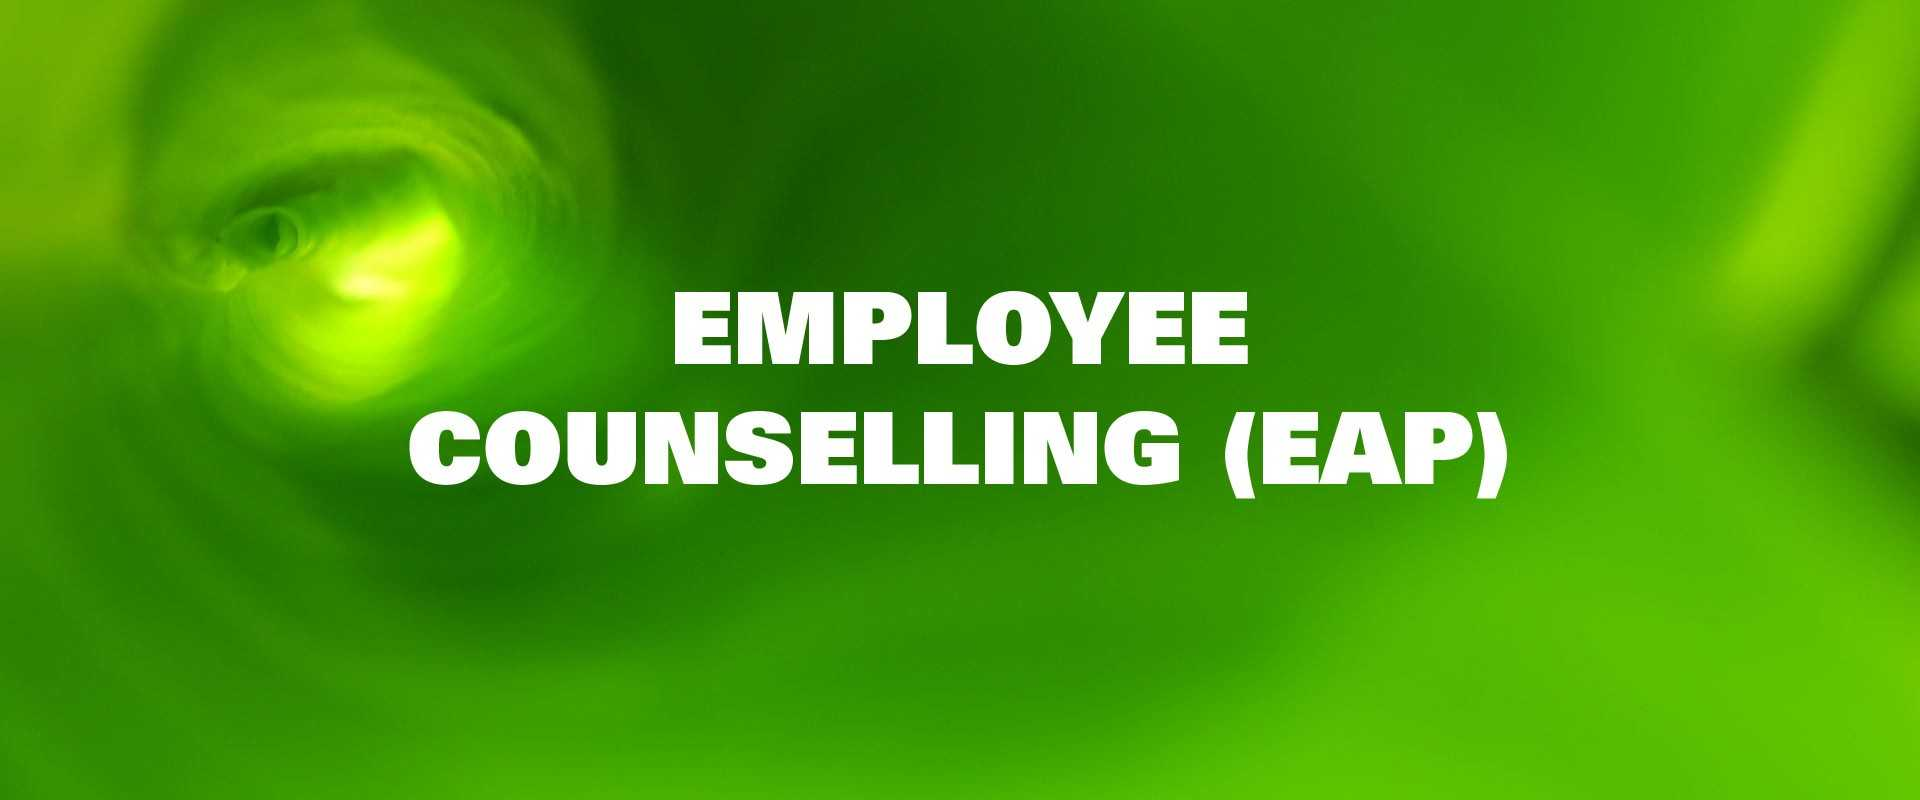 Employee counselling (EAP)